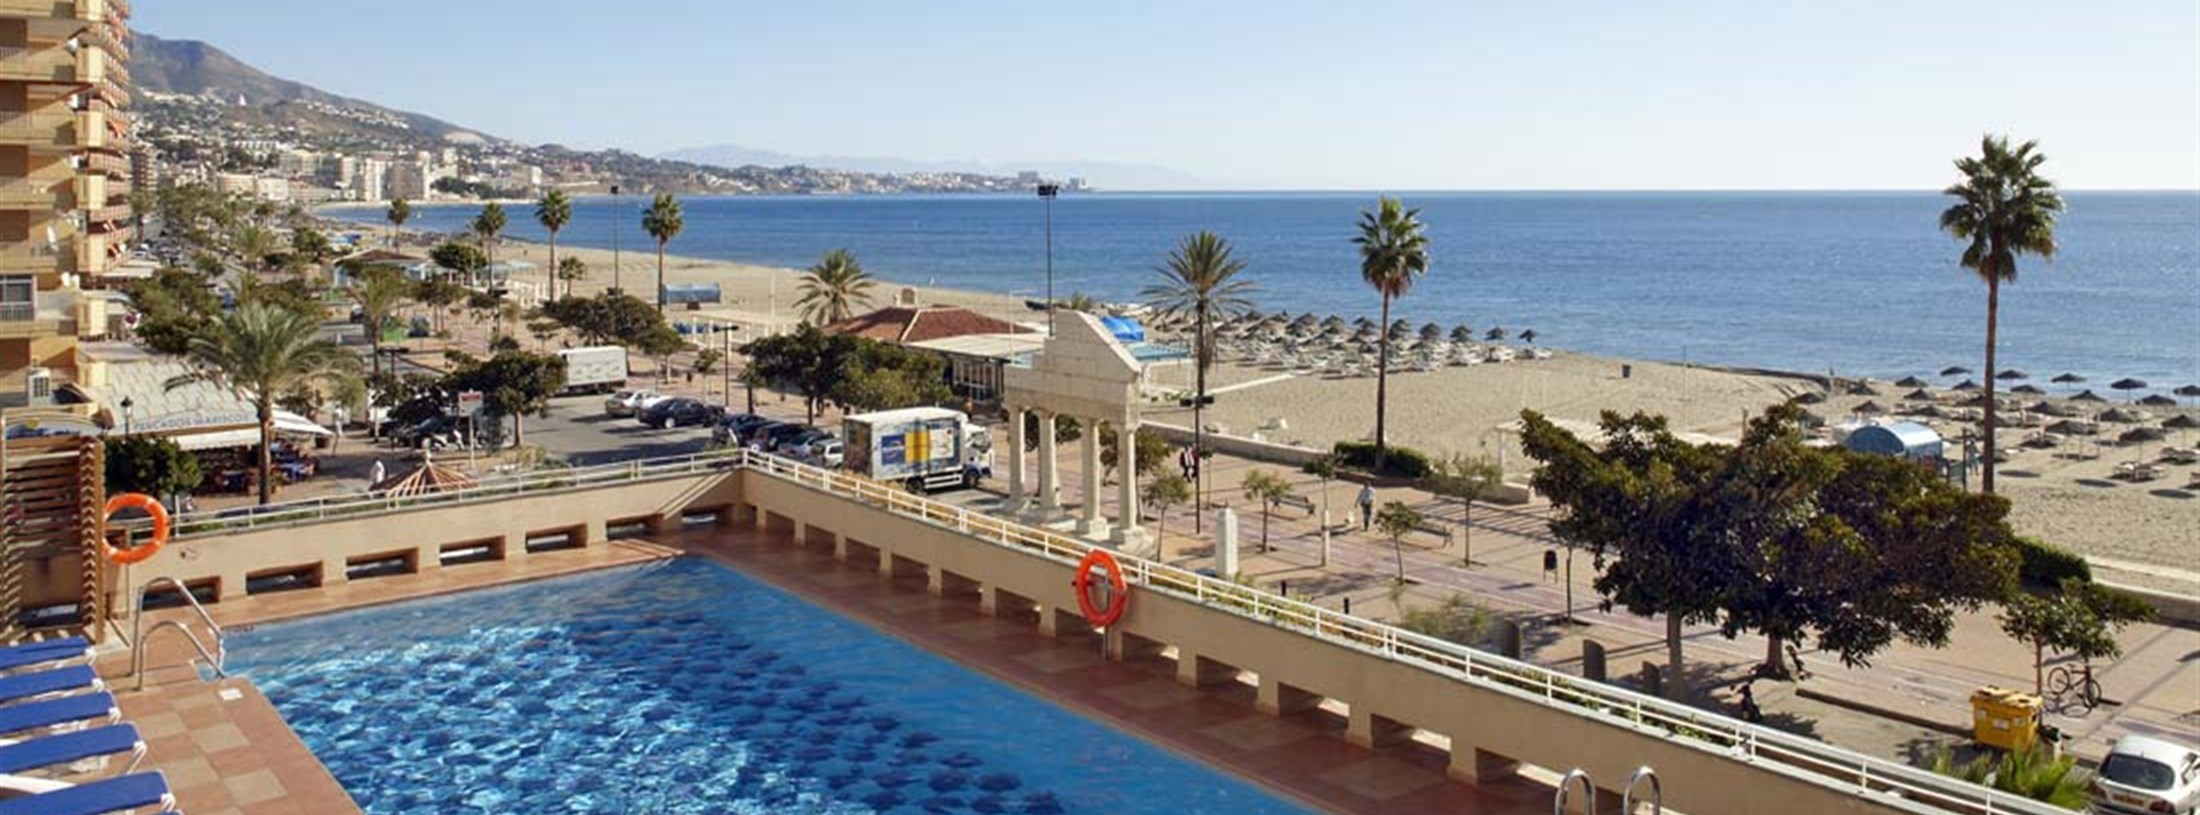 Fuengirola hotel and accommodation for your holiday by car or by plane - Apartamentos costa del sol ...